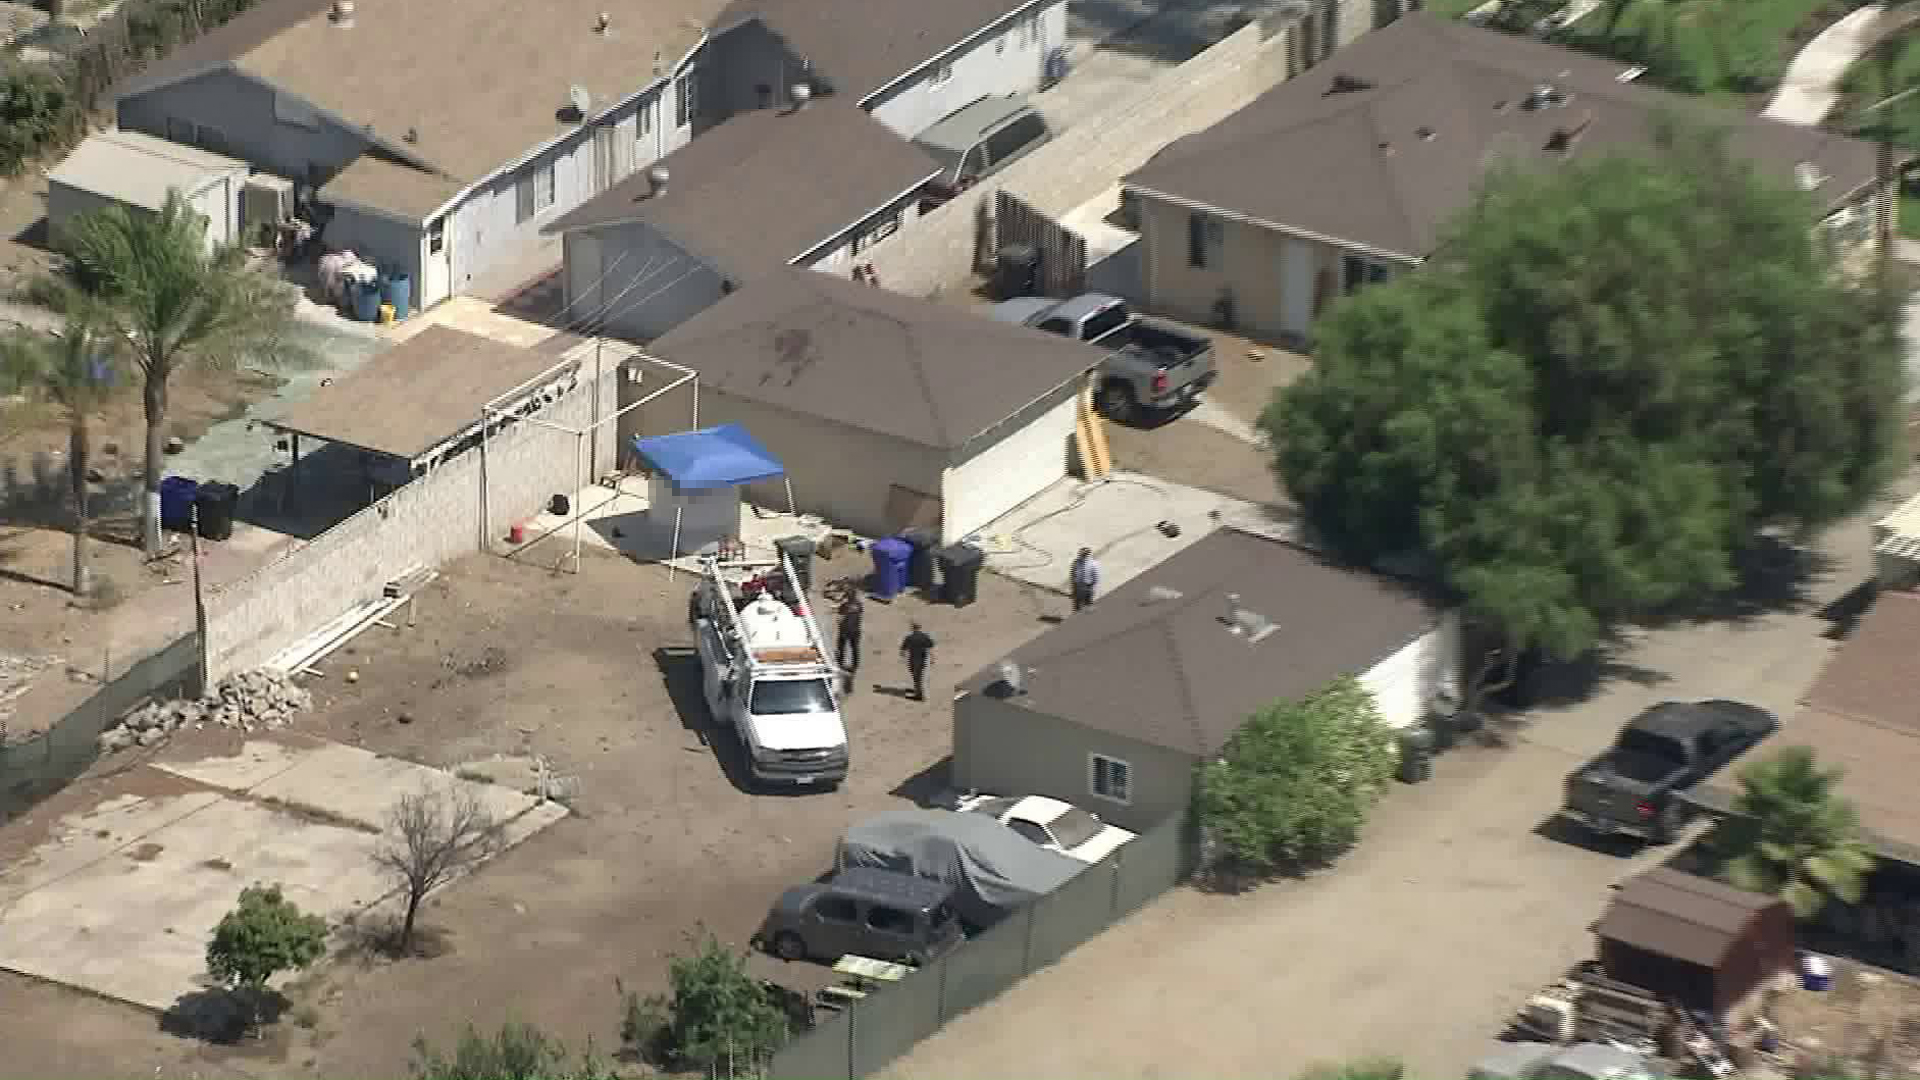 Police investigated the death of a person whose body was found in a bloody water tank in Fontana on Sept. 11, 2019. (Credit: KTLA)